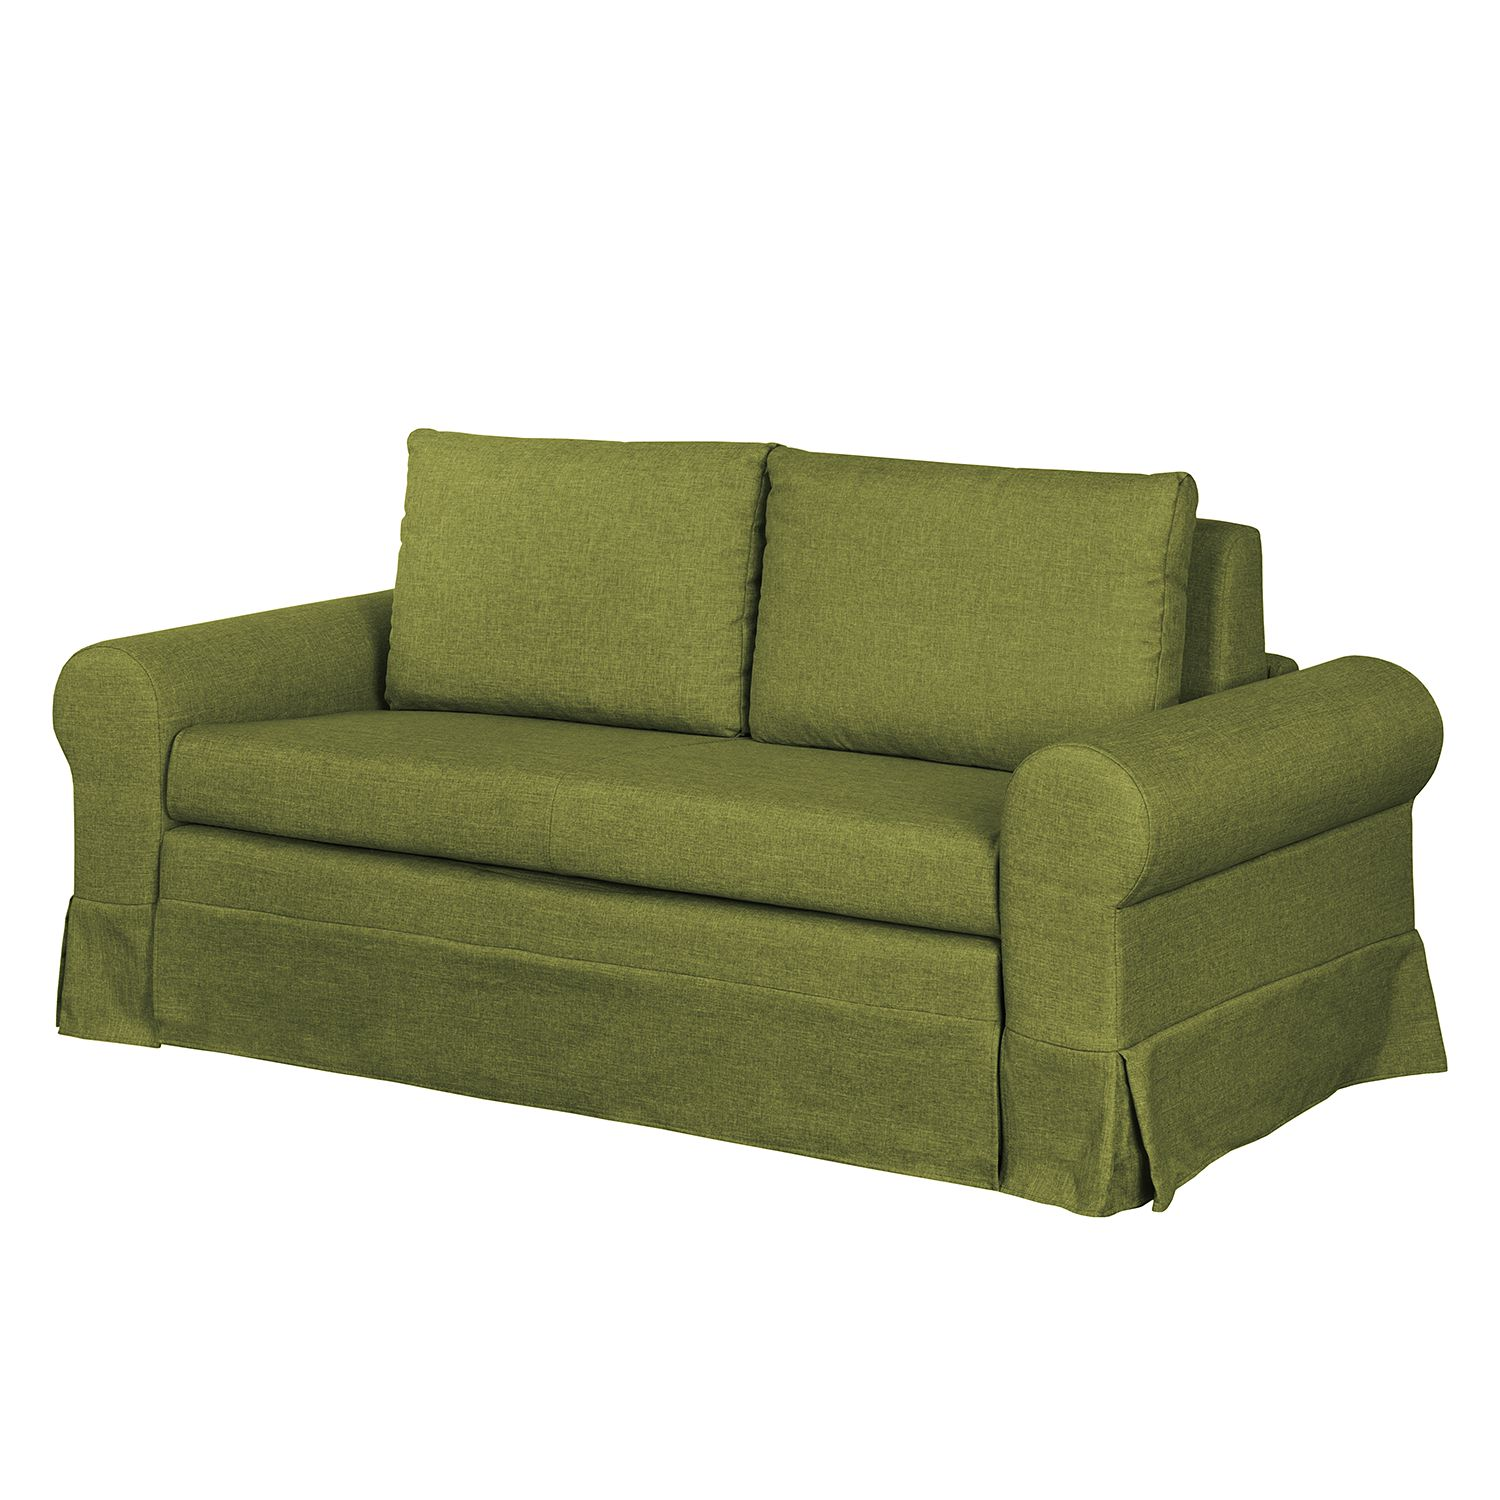 Canapé convertible Latina III - Tissu - Vert - 185 cm, mooved